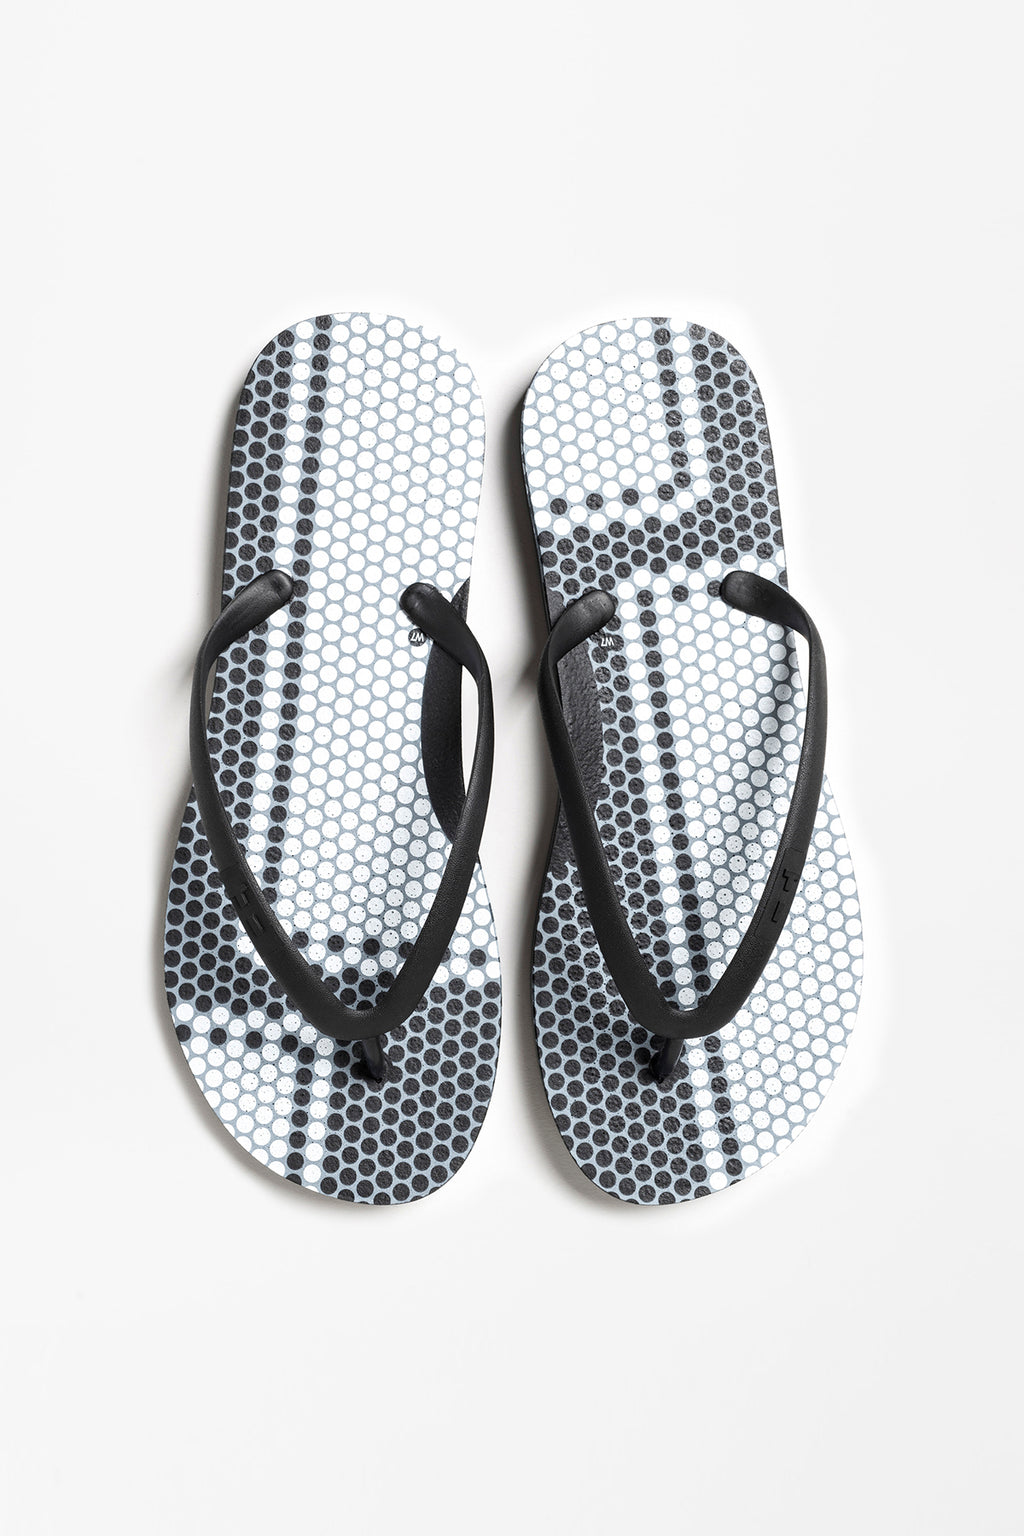 Women's black flip flops with geometric pattern